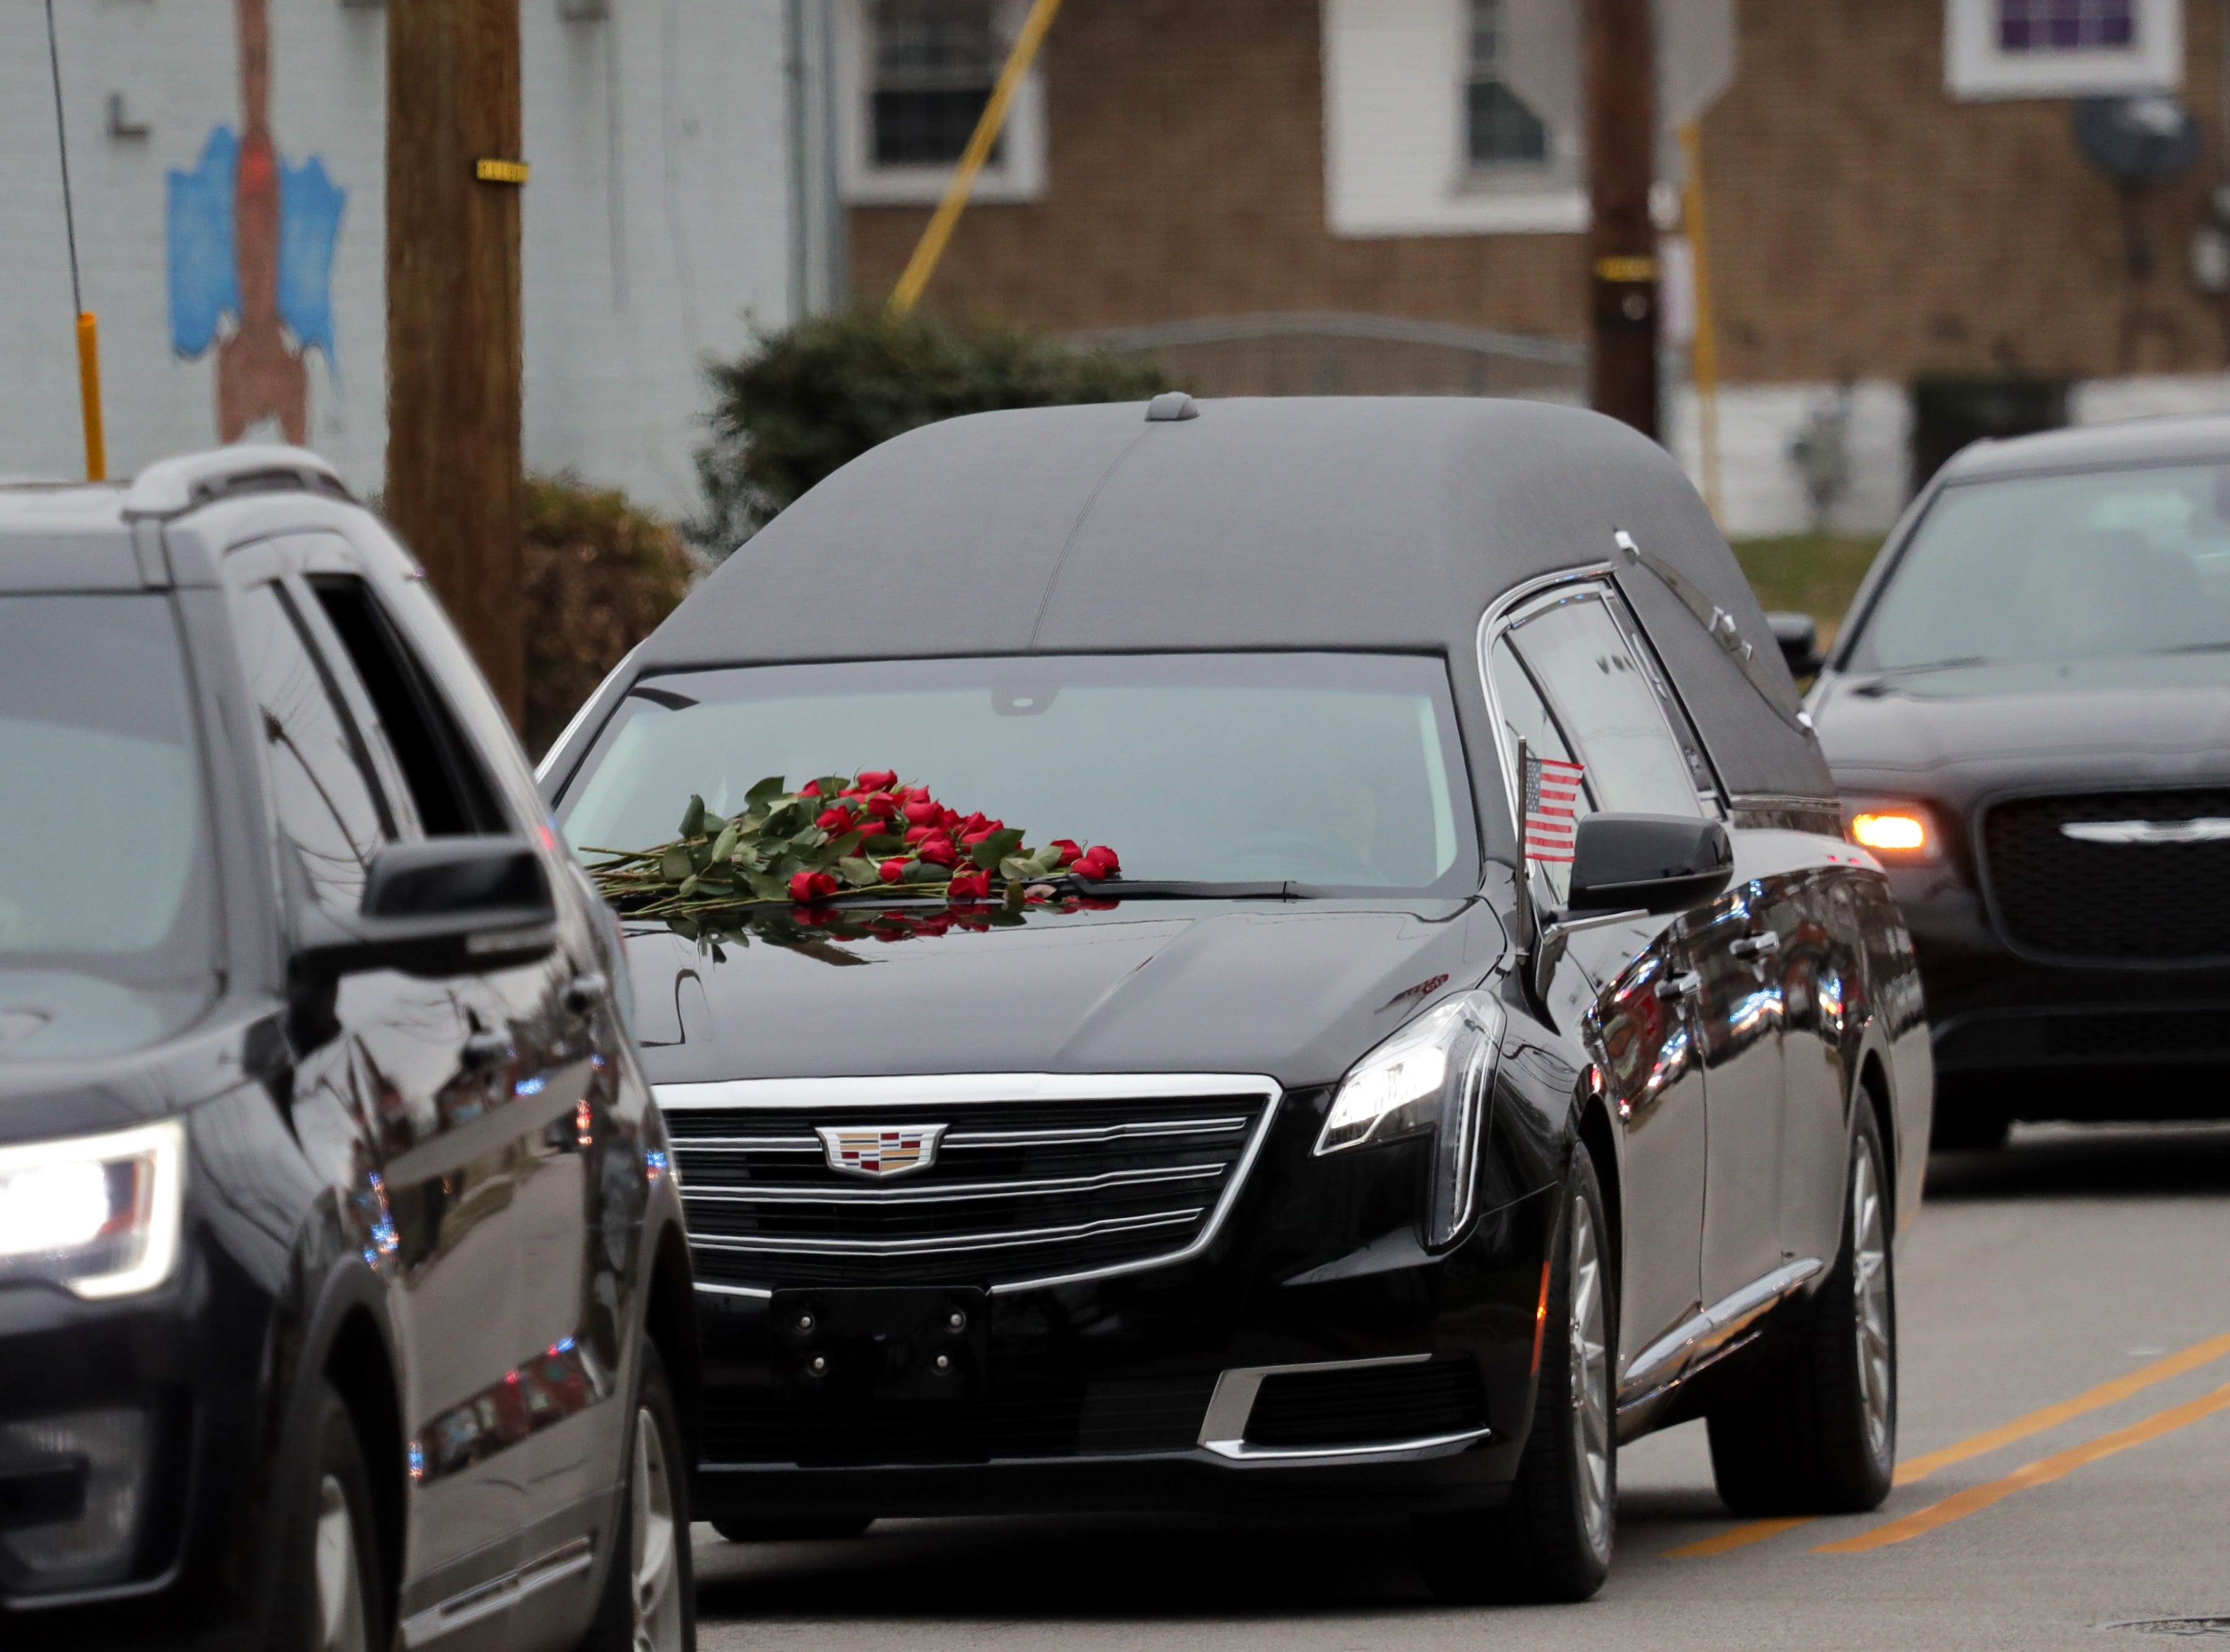 LMPD's Det. Deidre Mengedoht's procession turned off of Vermont and on to Louis C Coleman as it made it's way through the community she served. 